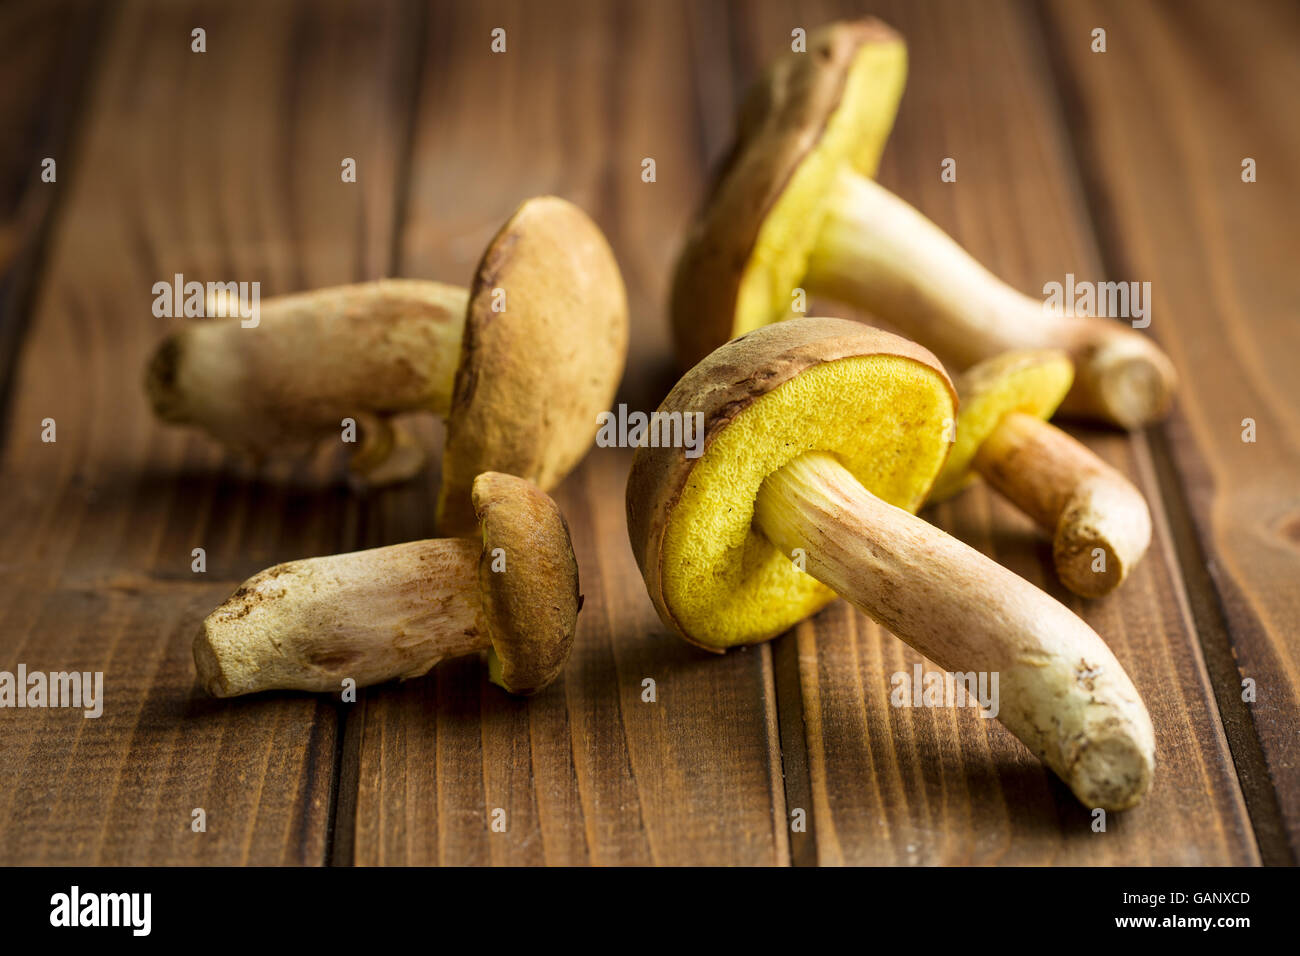 Autumn harvest of fresh woodland fungi with boletus mushrooms on old wooden table. - Stock Image